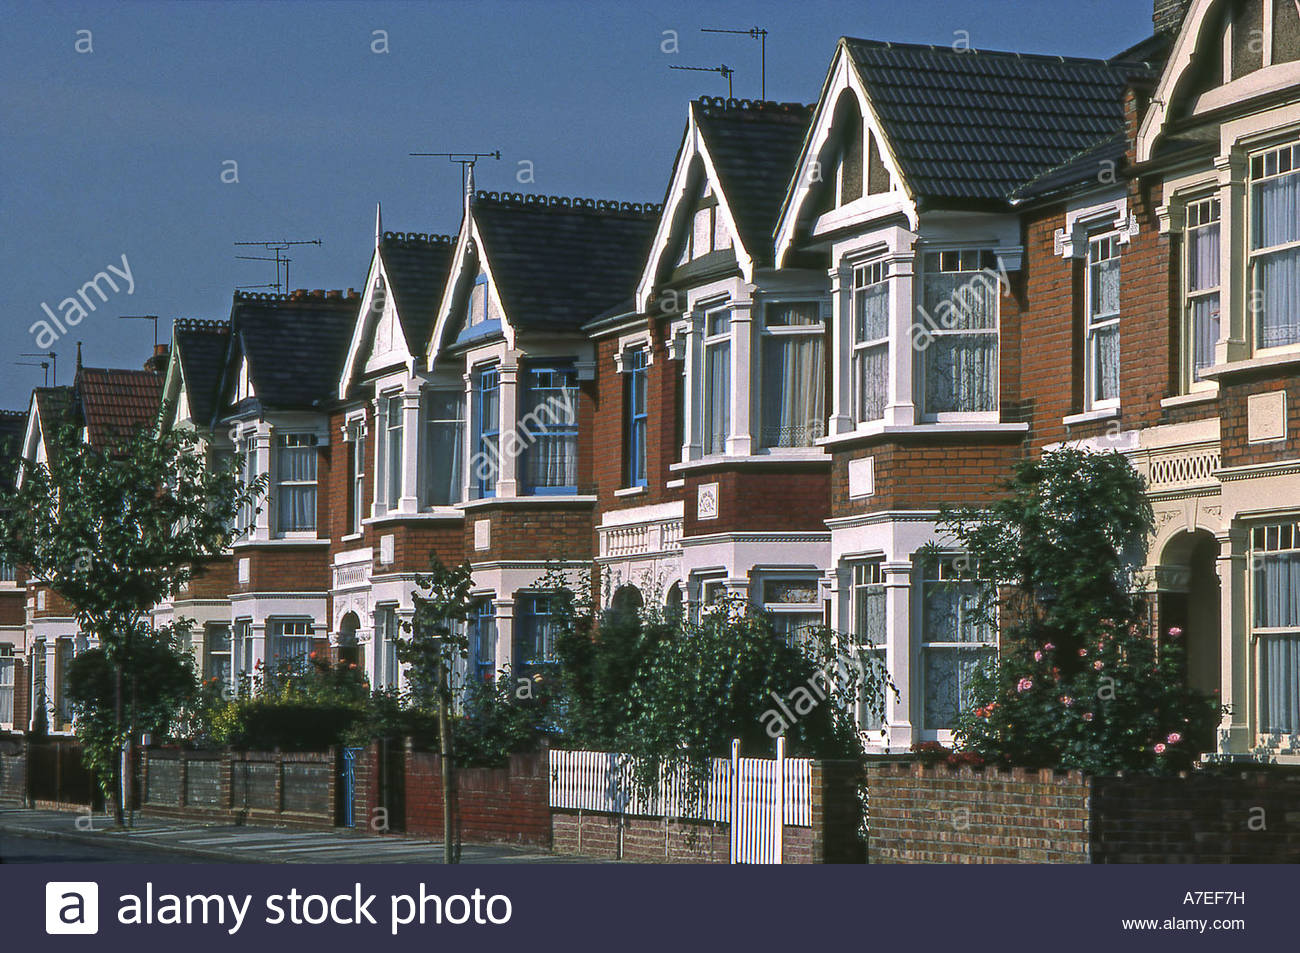 row-of-british-suburban-houses-A7EF7H.jpg?profile=RESIZE_400x